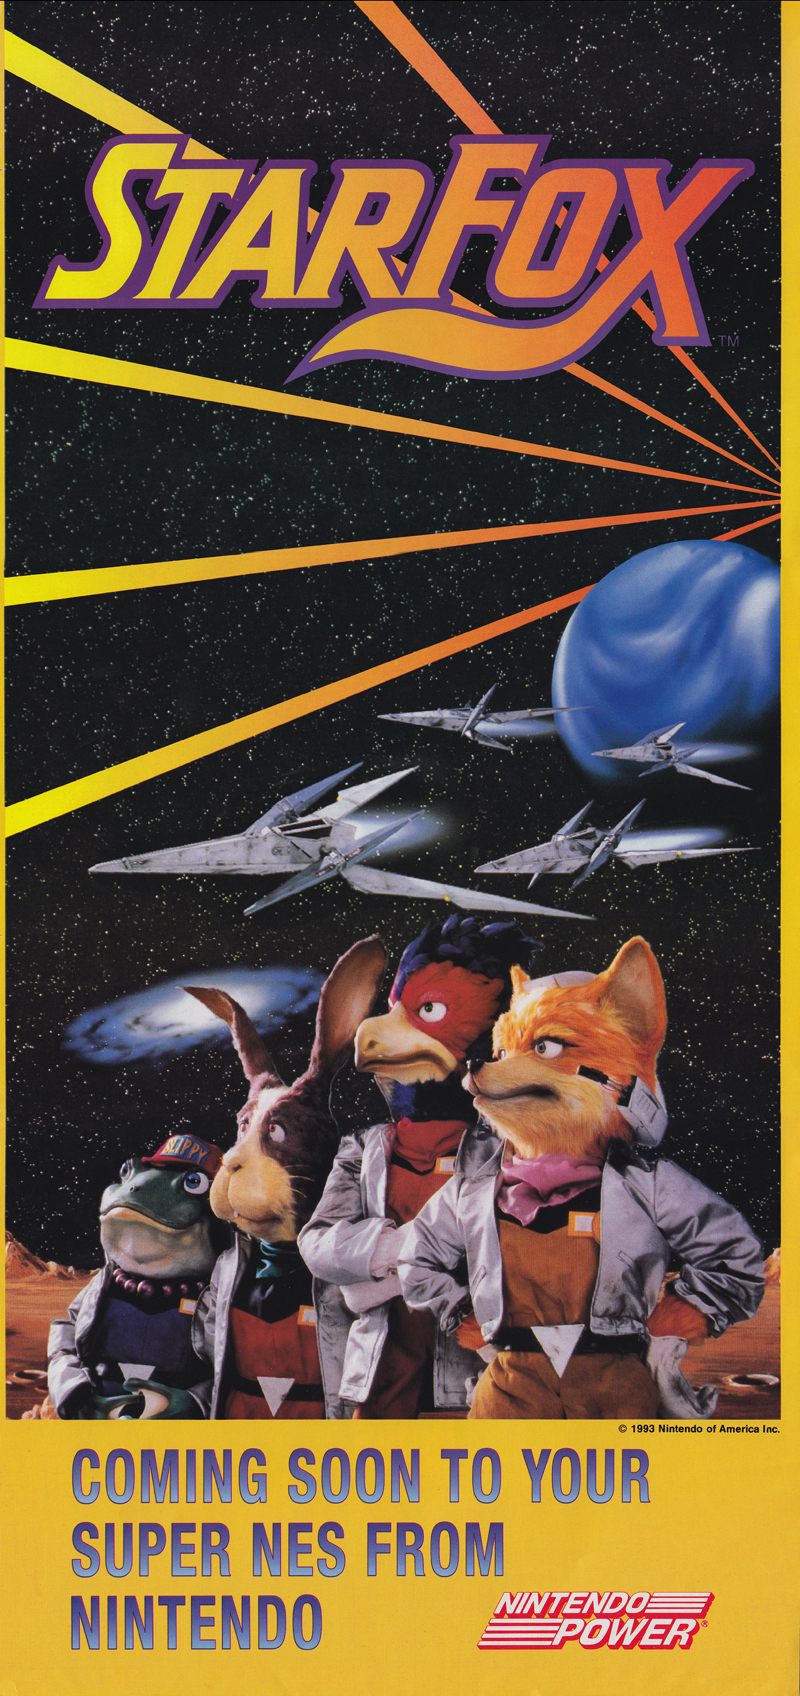 Star Fox hd full movie download